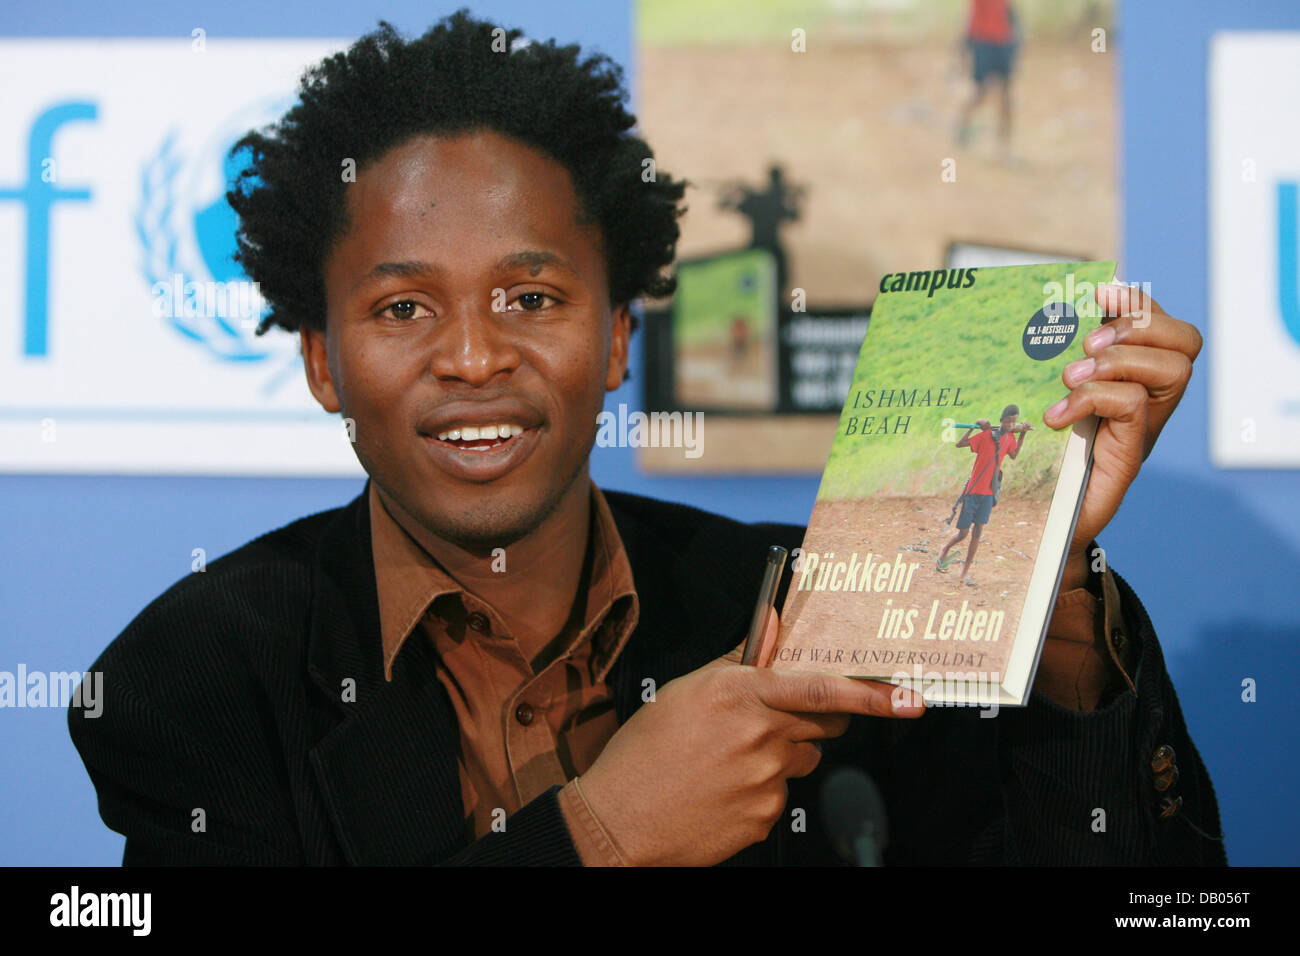 a long way gone: memoirs of a boy soldier by ishmael beah essay - in the memoir of ishmael beah, a long way gone, memoirs of a boy soldier, beah states that his life's journey has been a huge obstacle, but has learned to overcome that struggle by venting while the two contradictory sides continue their battling.